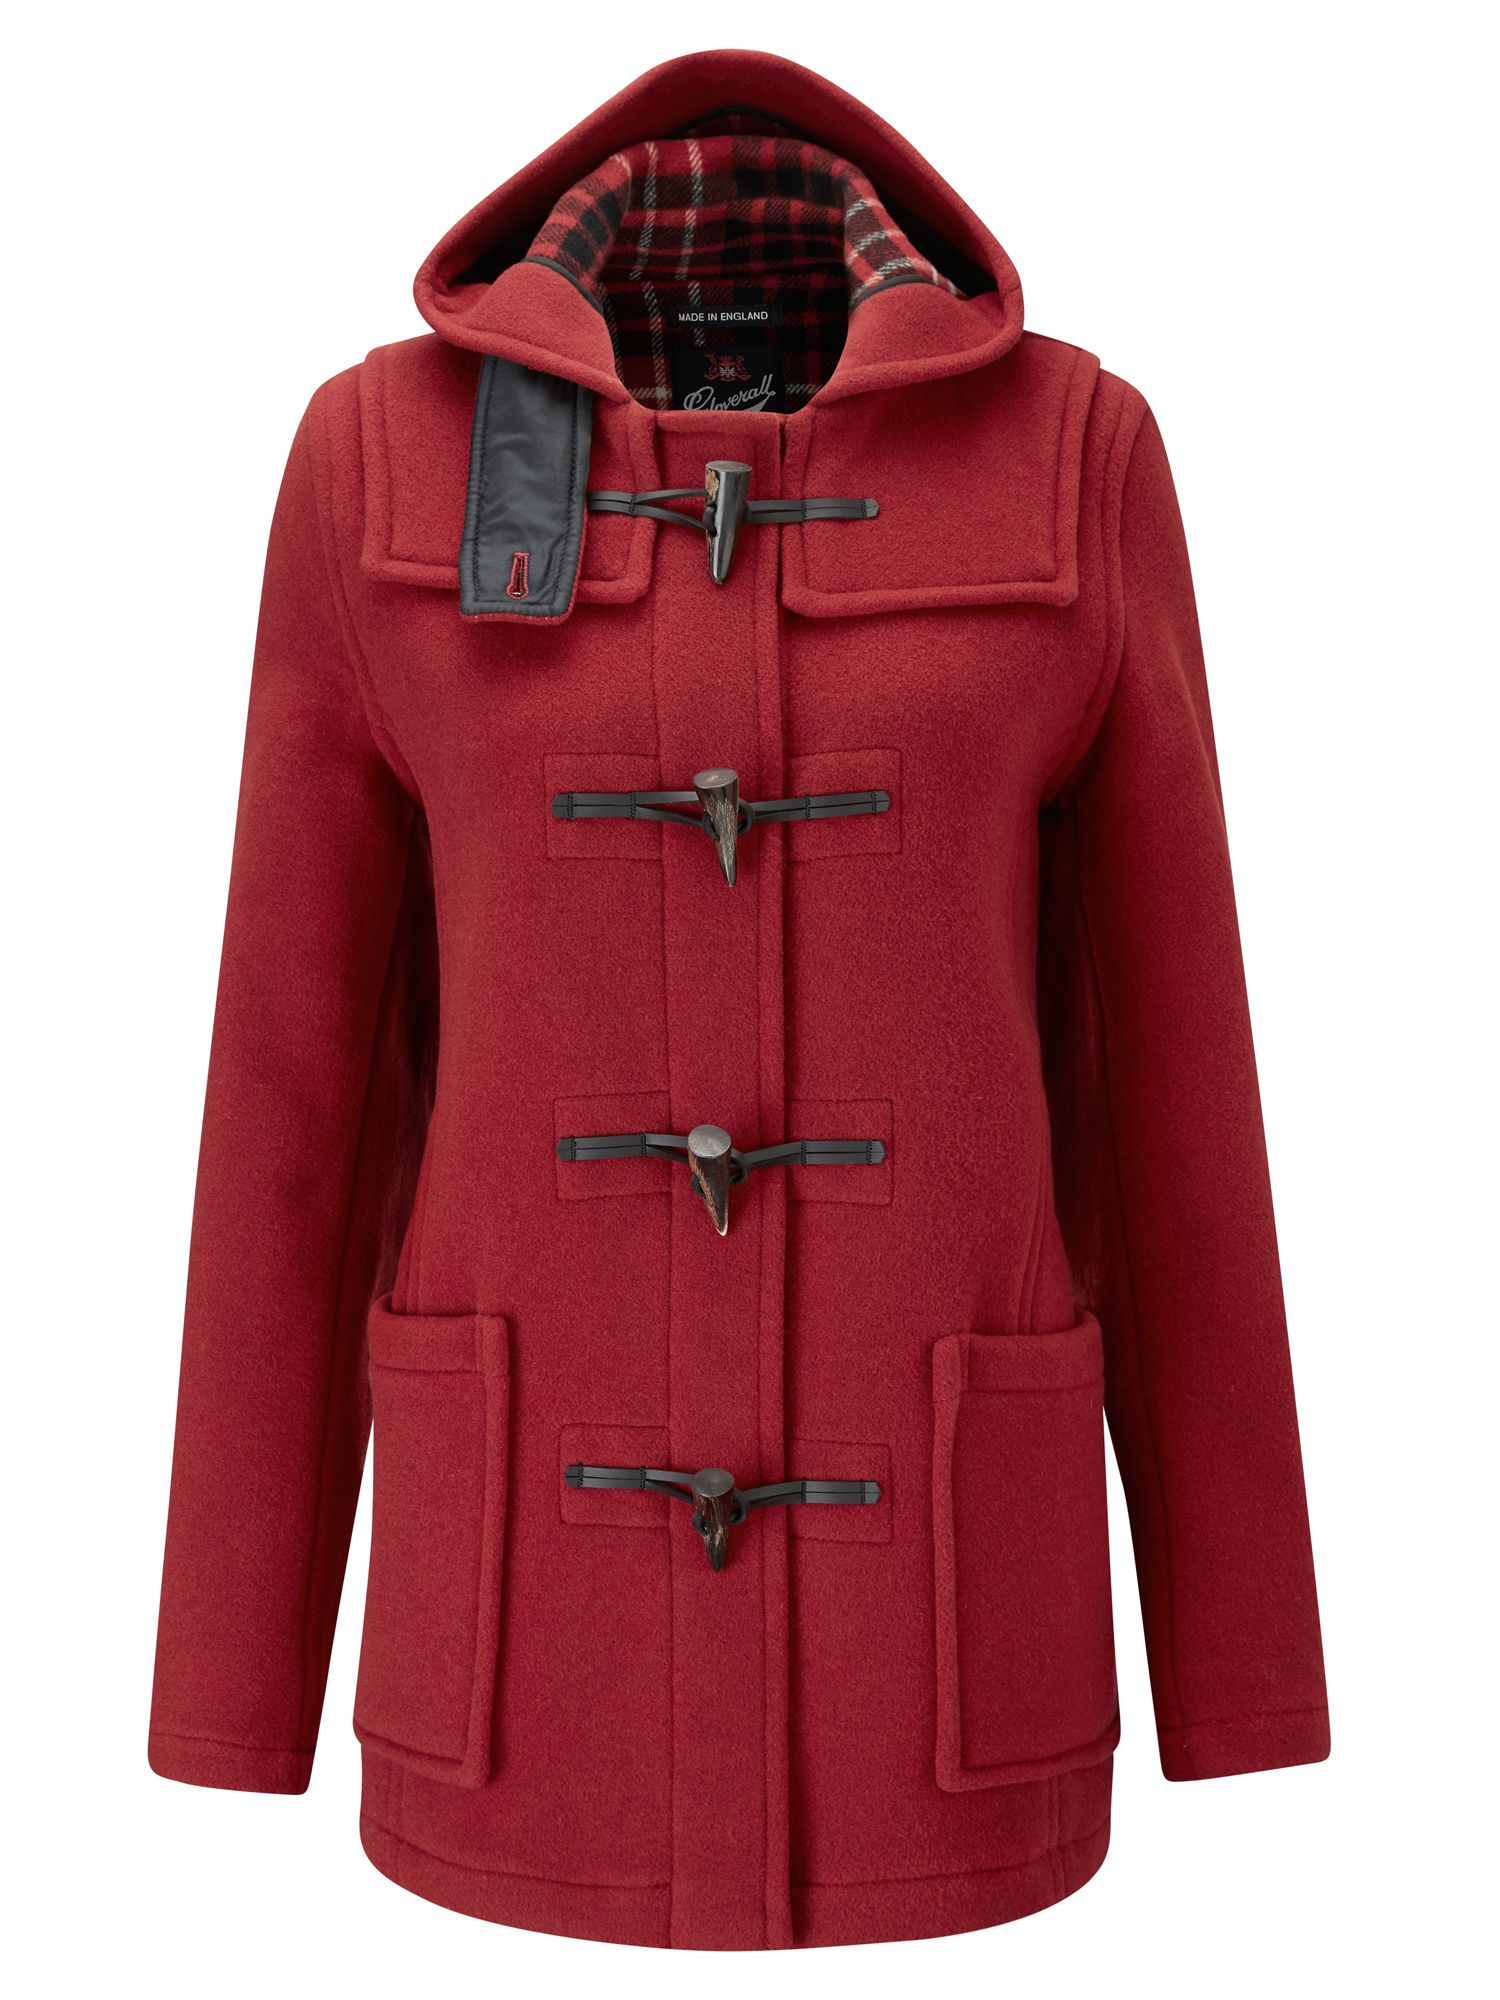 Buy cheap Red duffle coat - compare products prices for best UK deals